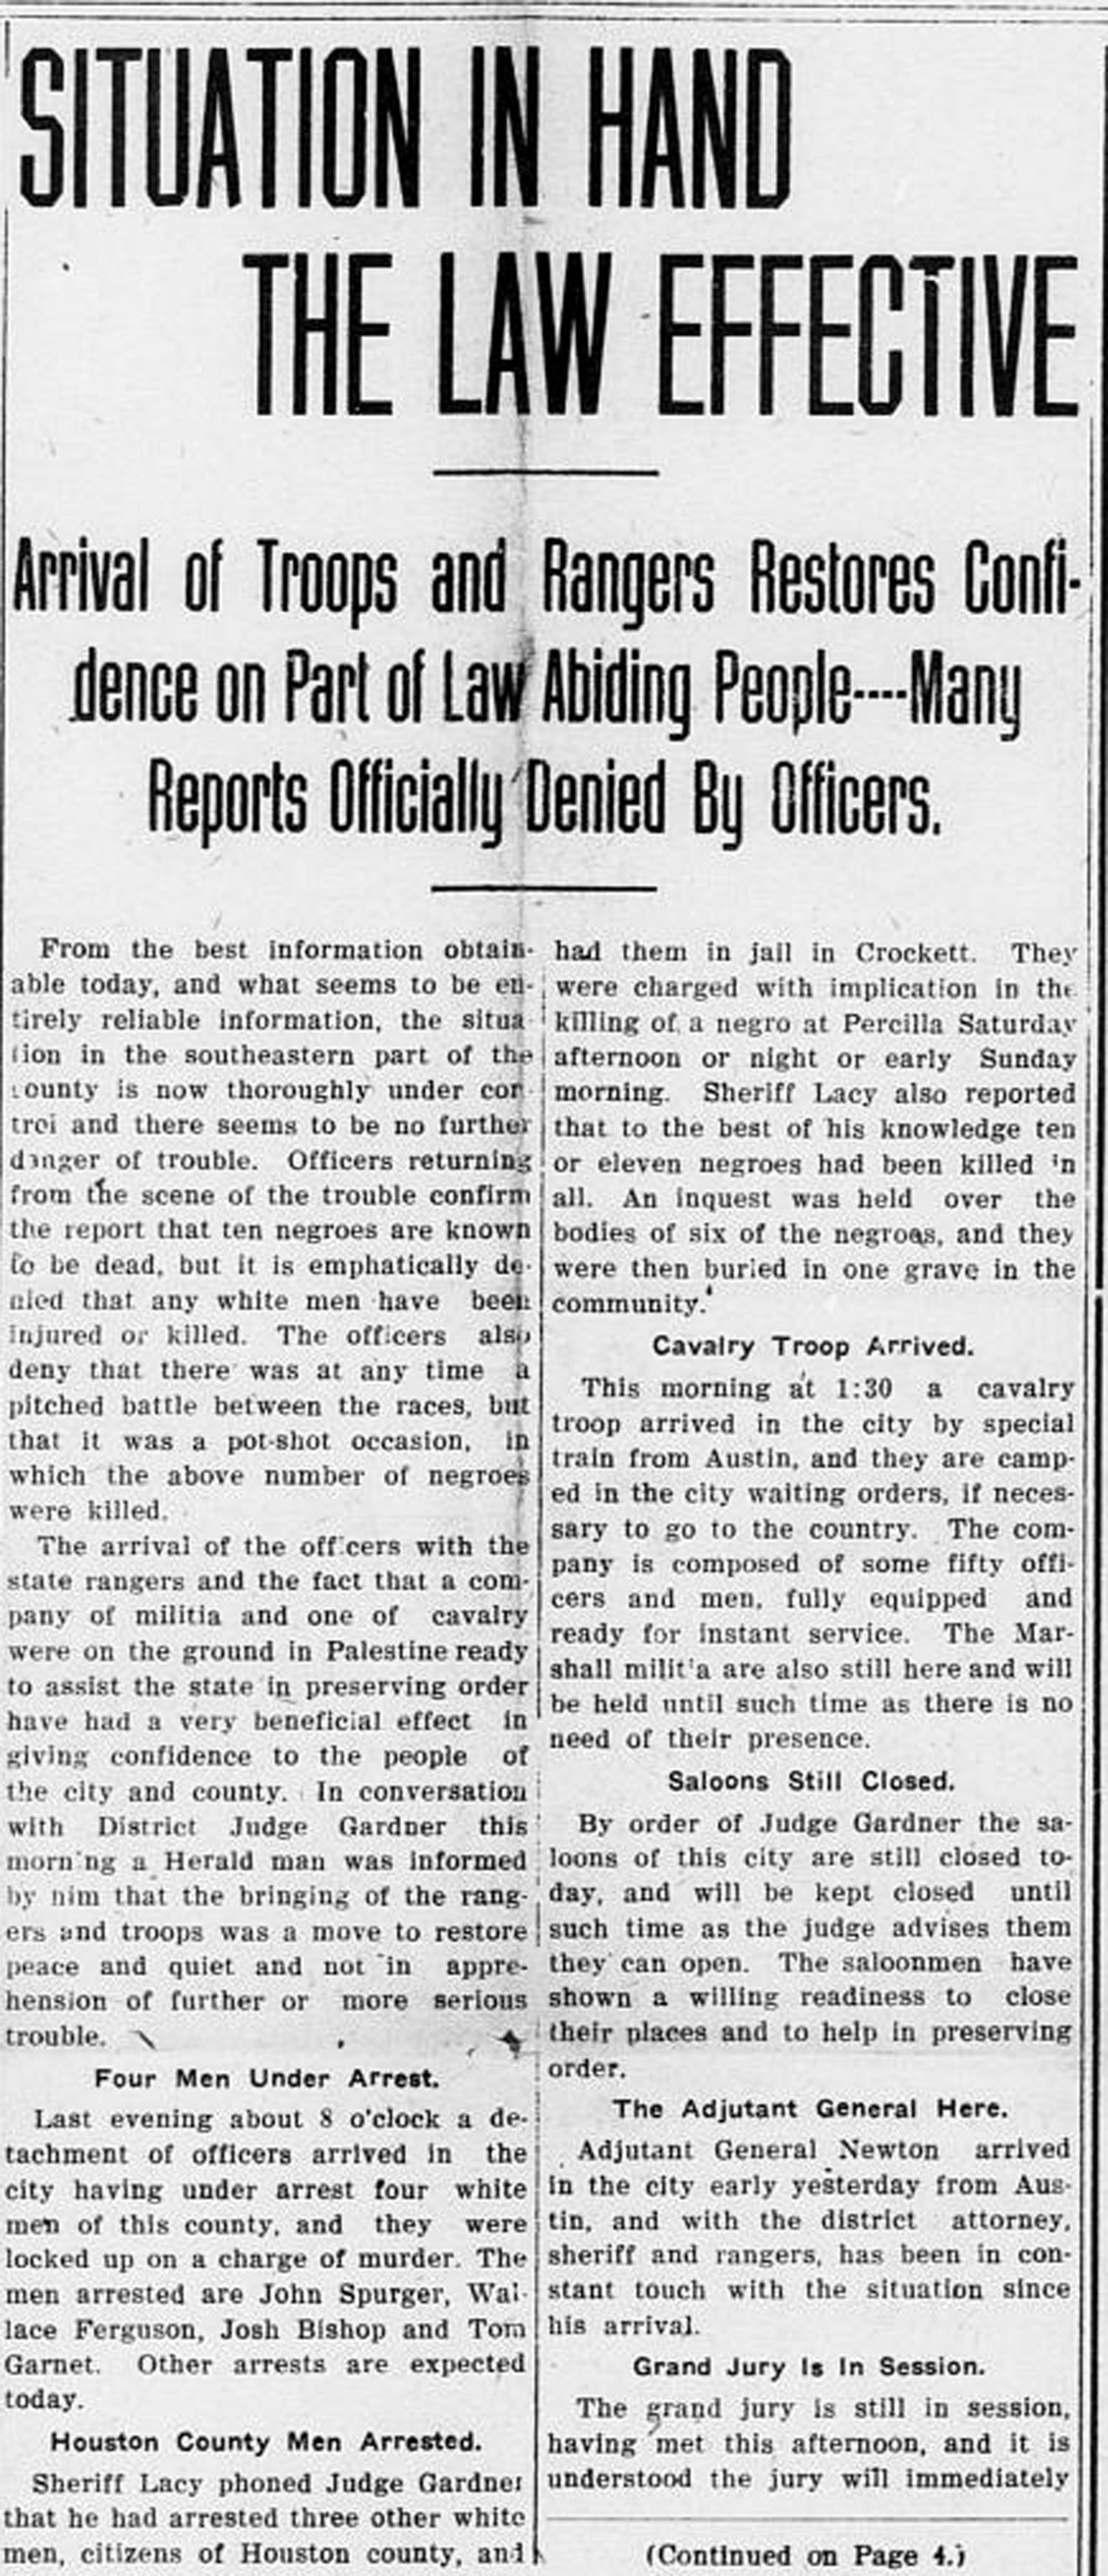 """Situation in Hand the Law Effective"" August 1, 1910 (Page 1) (Palestine Daily Herald)  (University of North Texas Libraries, The Portal to Texas History)"